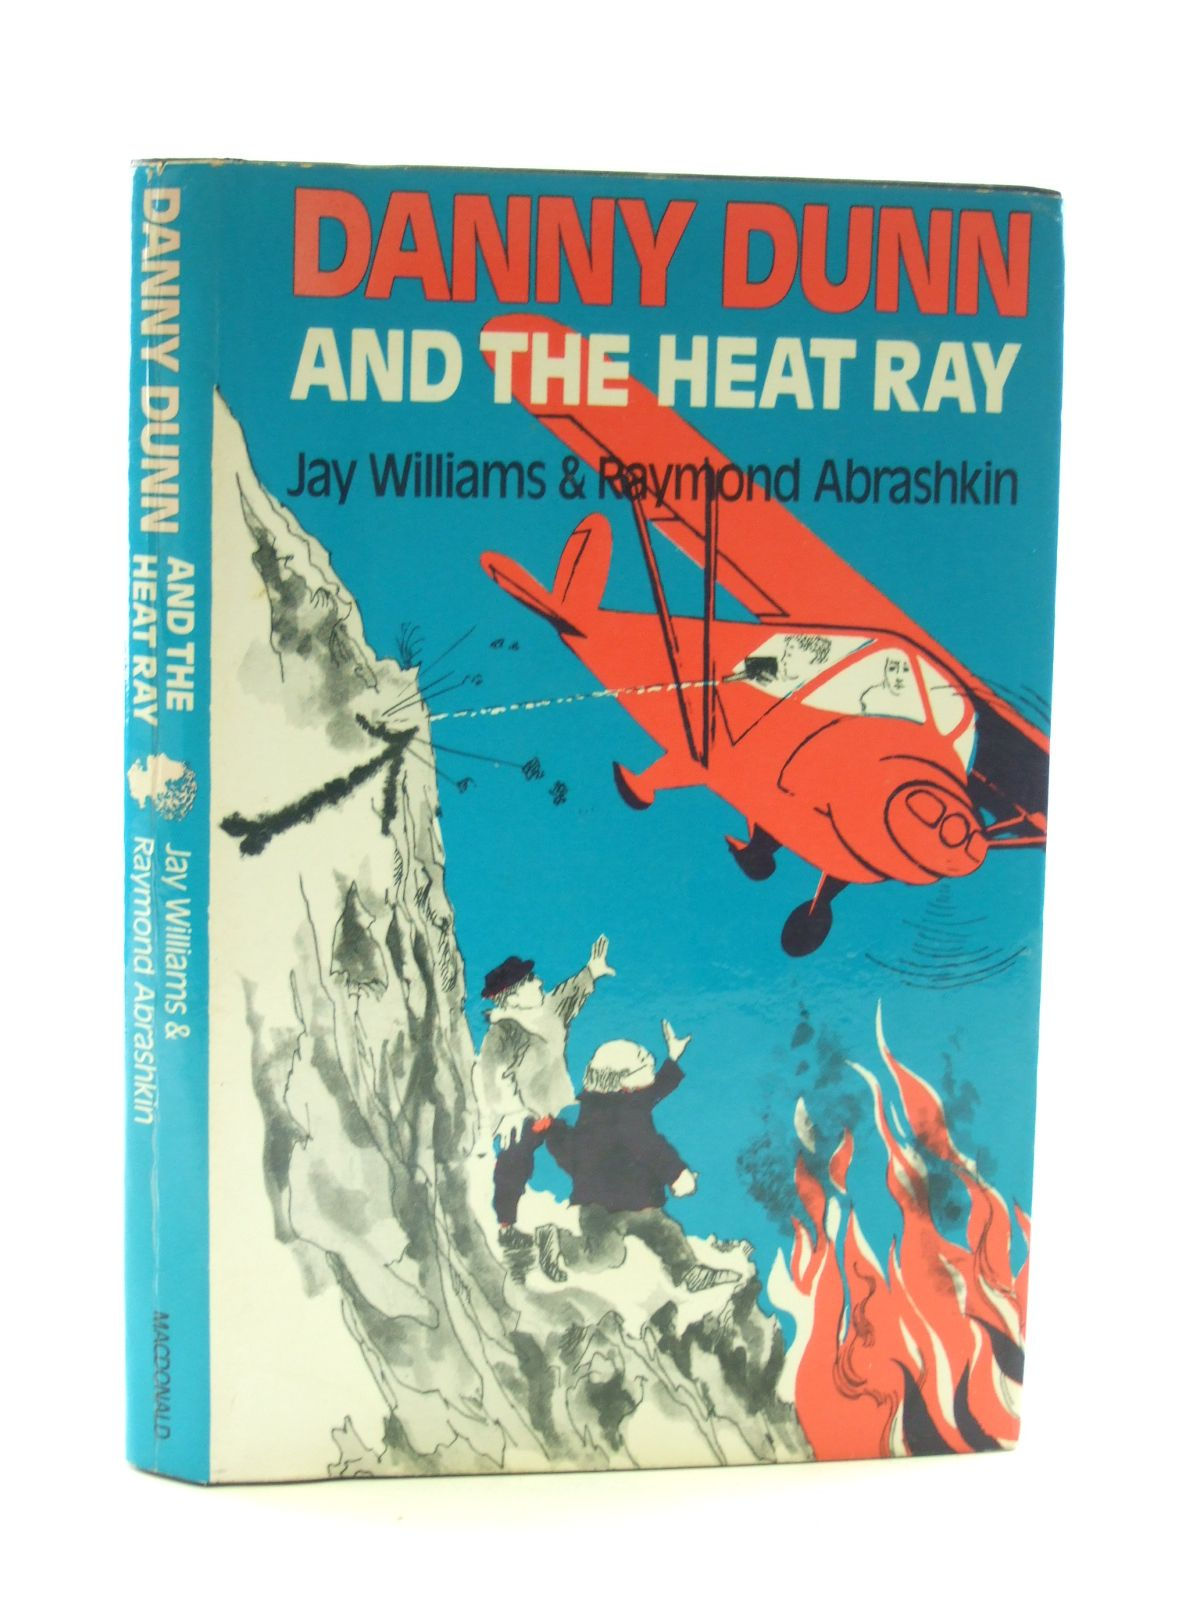 Photo of DANNY DUNN AND THE HEAT RAY written by Williams, Jay Abrashkin, Raymond illustrated by Mieke, Anne published by Macdonald & Co. (Publishers) Ltd. (STOCK CODE: 2107226)  for sale by Stella & Rose's Books